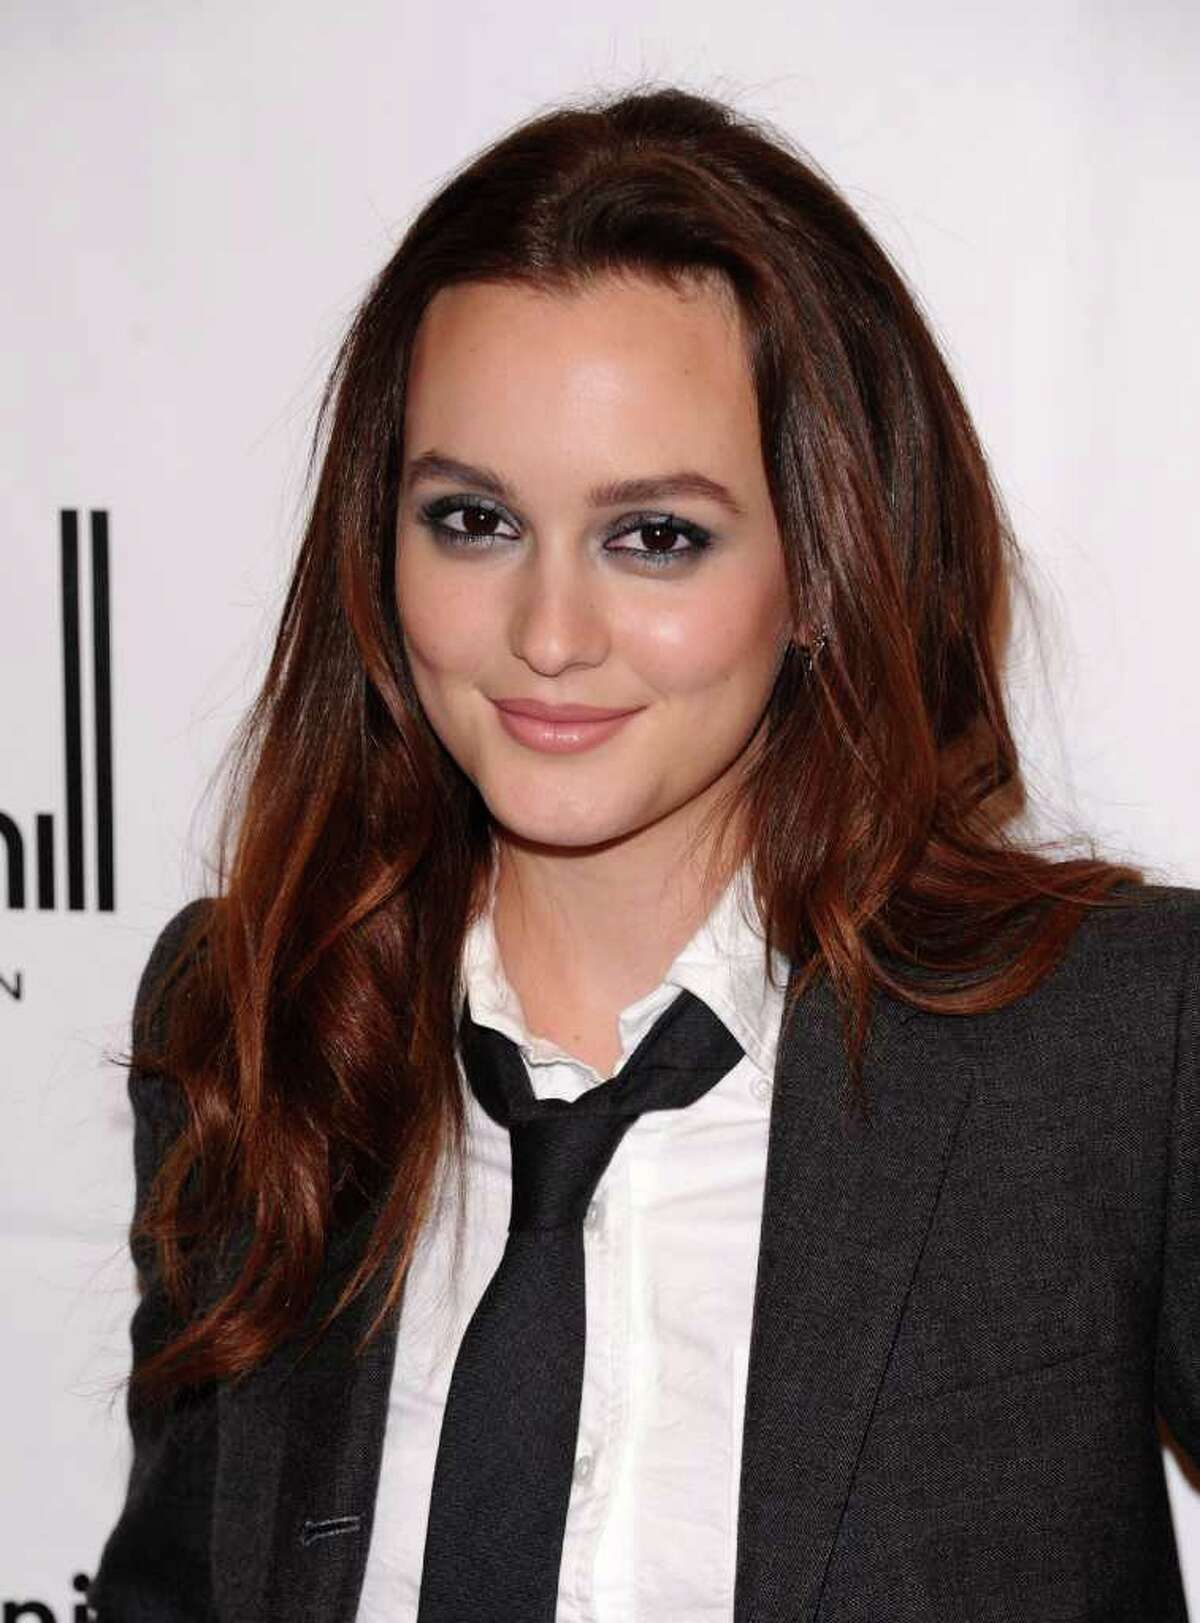 Actress Leighton Meester attends the 20th anniversary of The Gotham Independent Film awards in New York, on Monday, Nov. 29, 2010. (AP Photo/Peter Kramer)